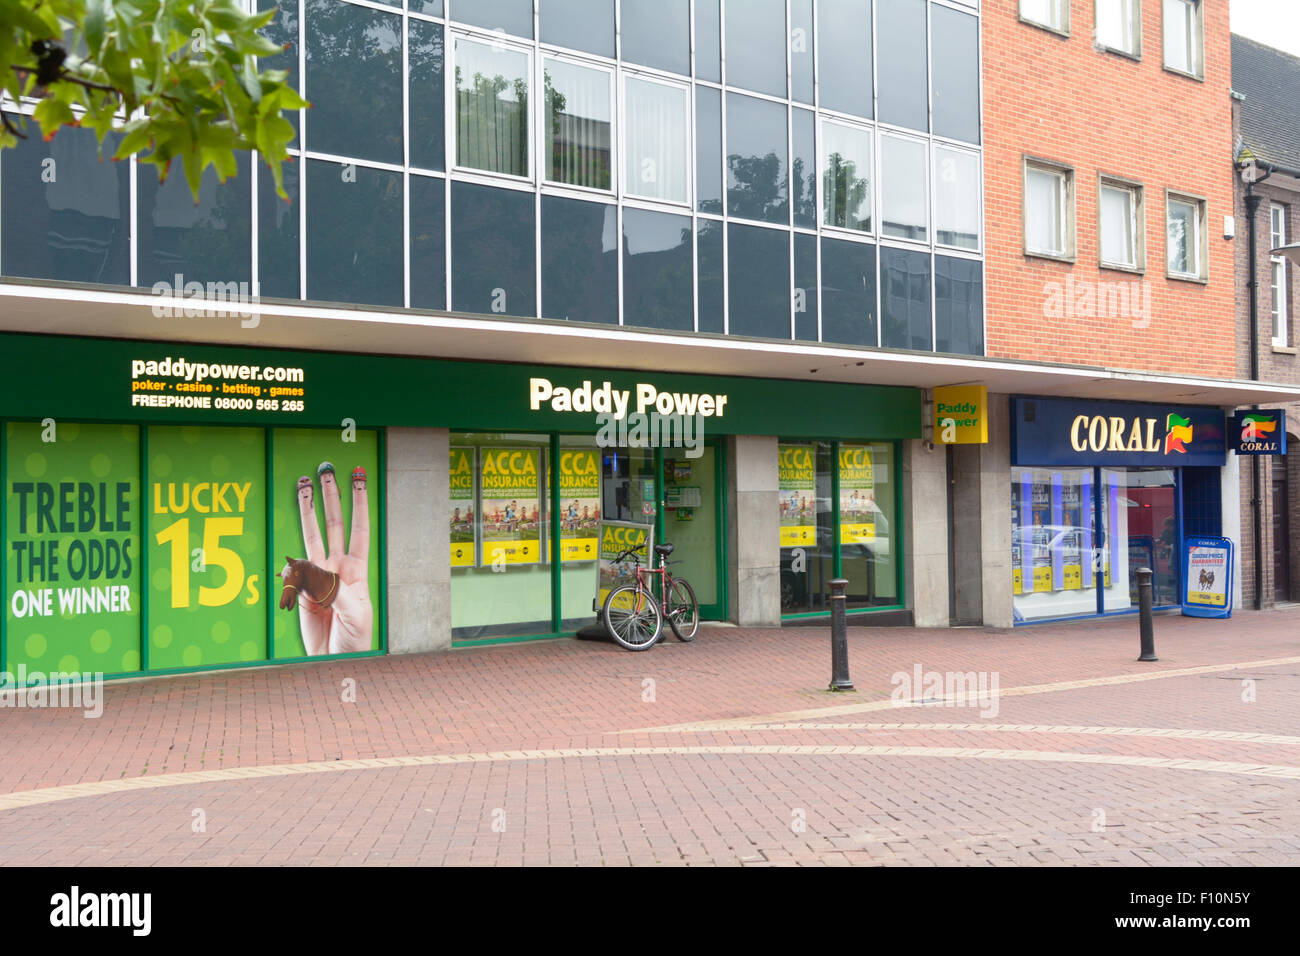 Paddy Power and Coral bookmakers next door to each other in the town centre in Bedford, Bedfordshire, England Stock Photo